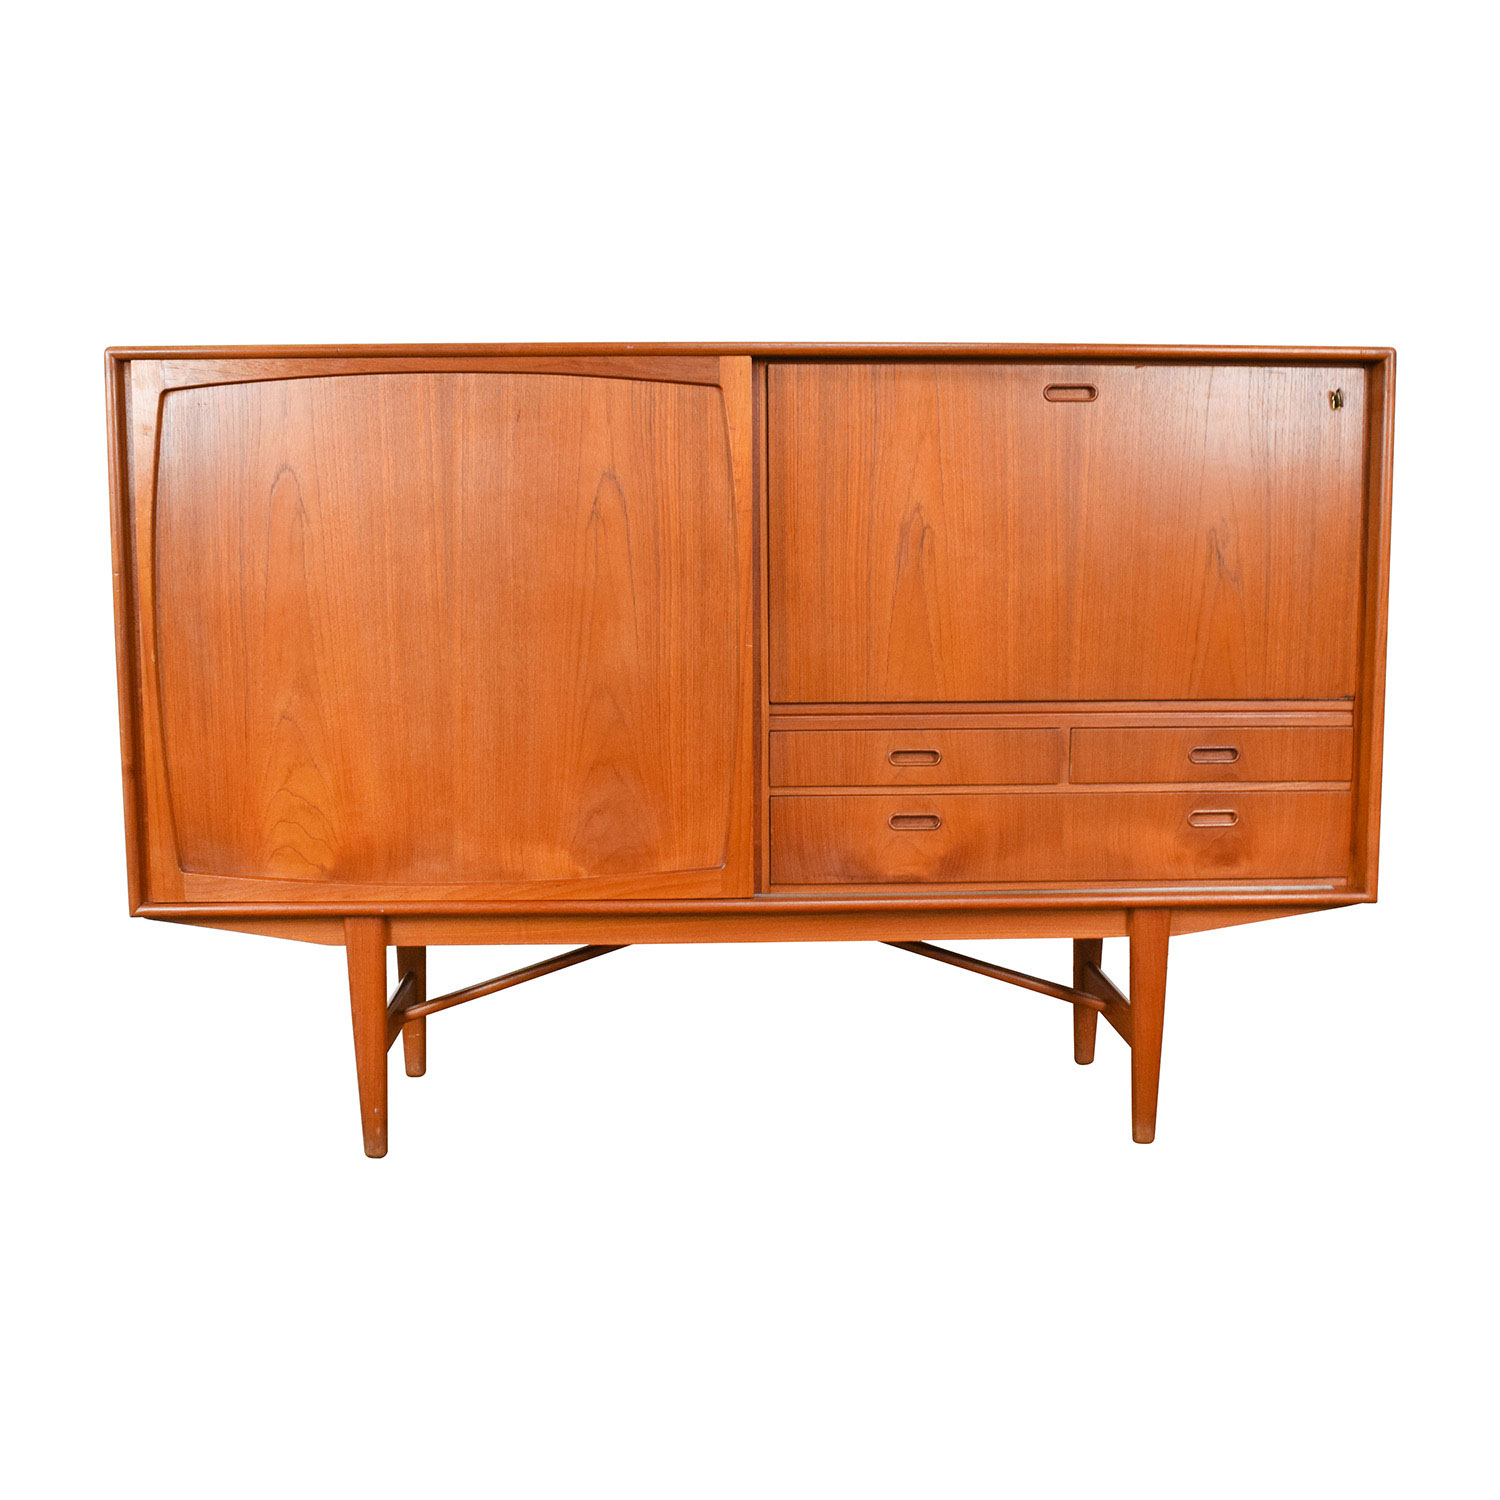 Teak Danish 1950s Custom Sideboard with Etched Glass Bar Interior nyc